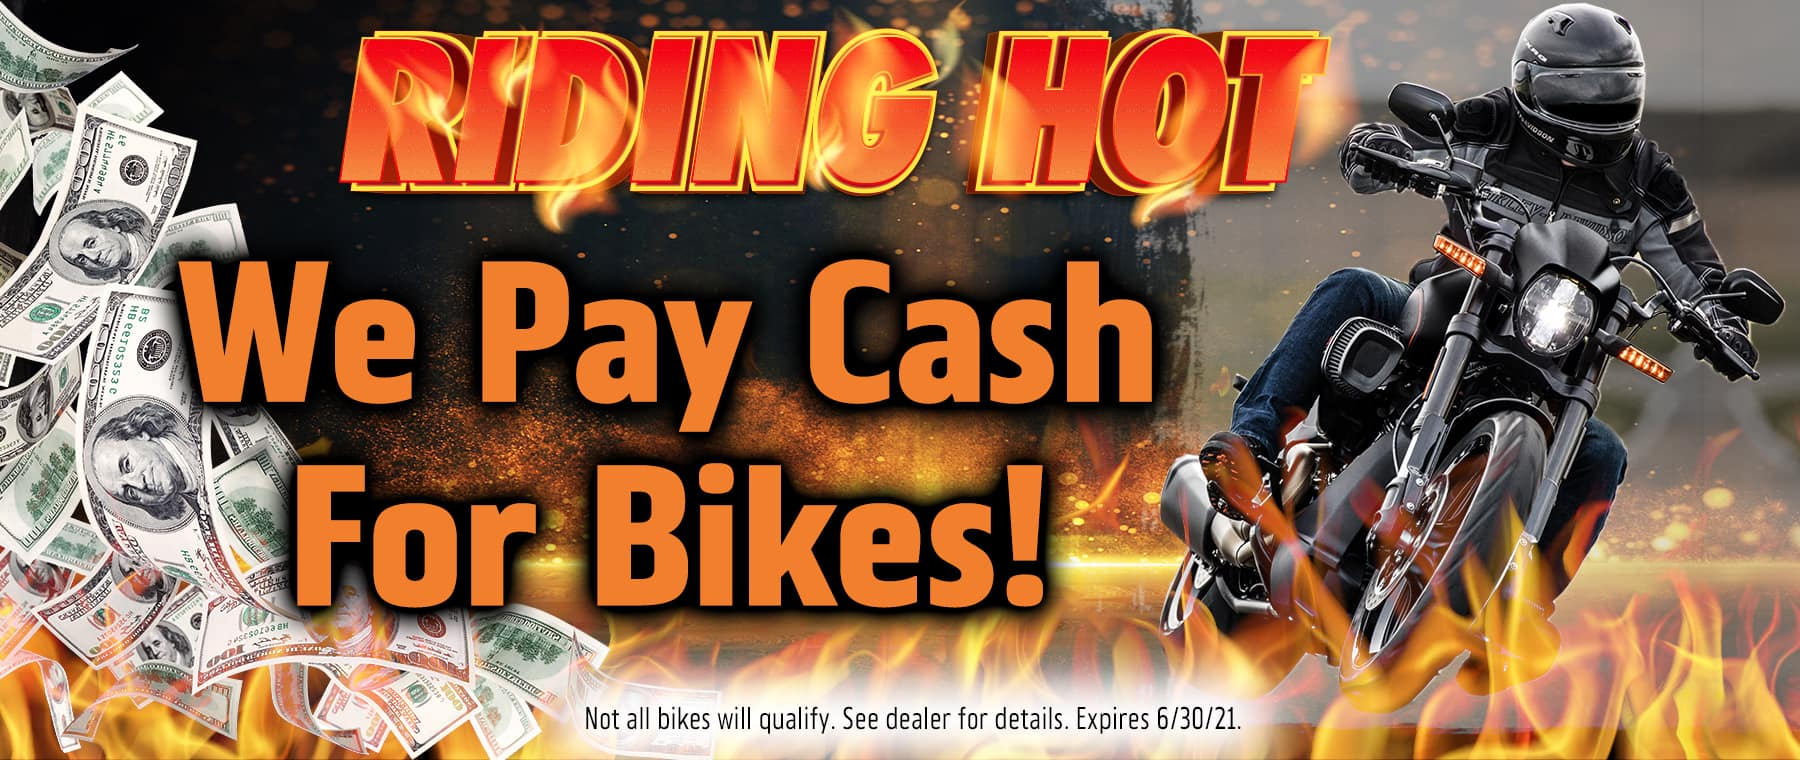 WE PAY CASH FOR BIKES